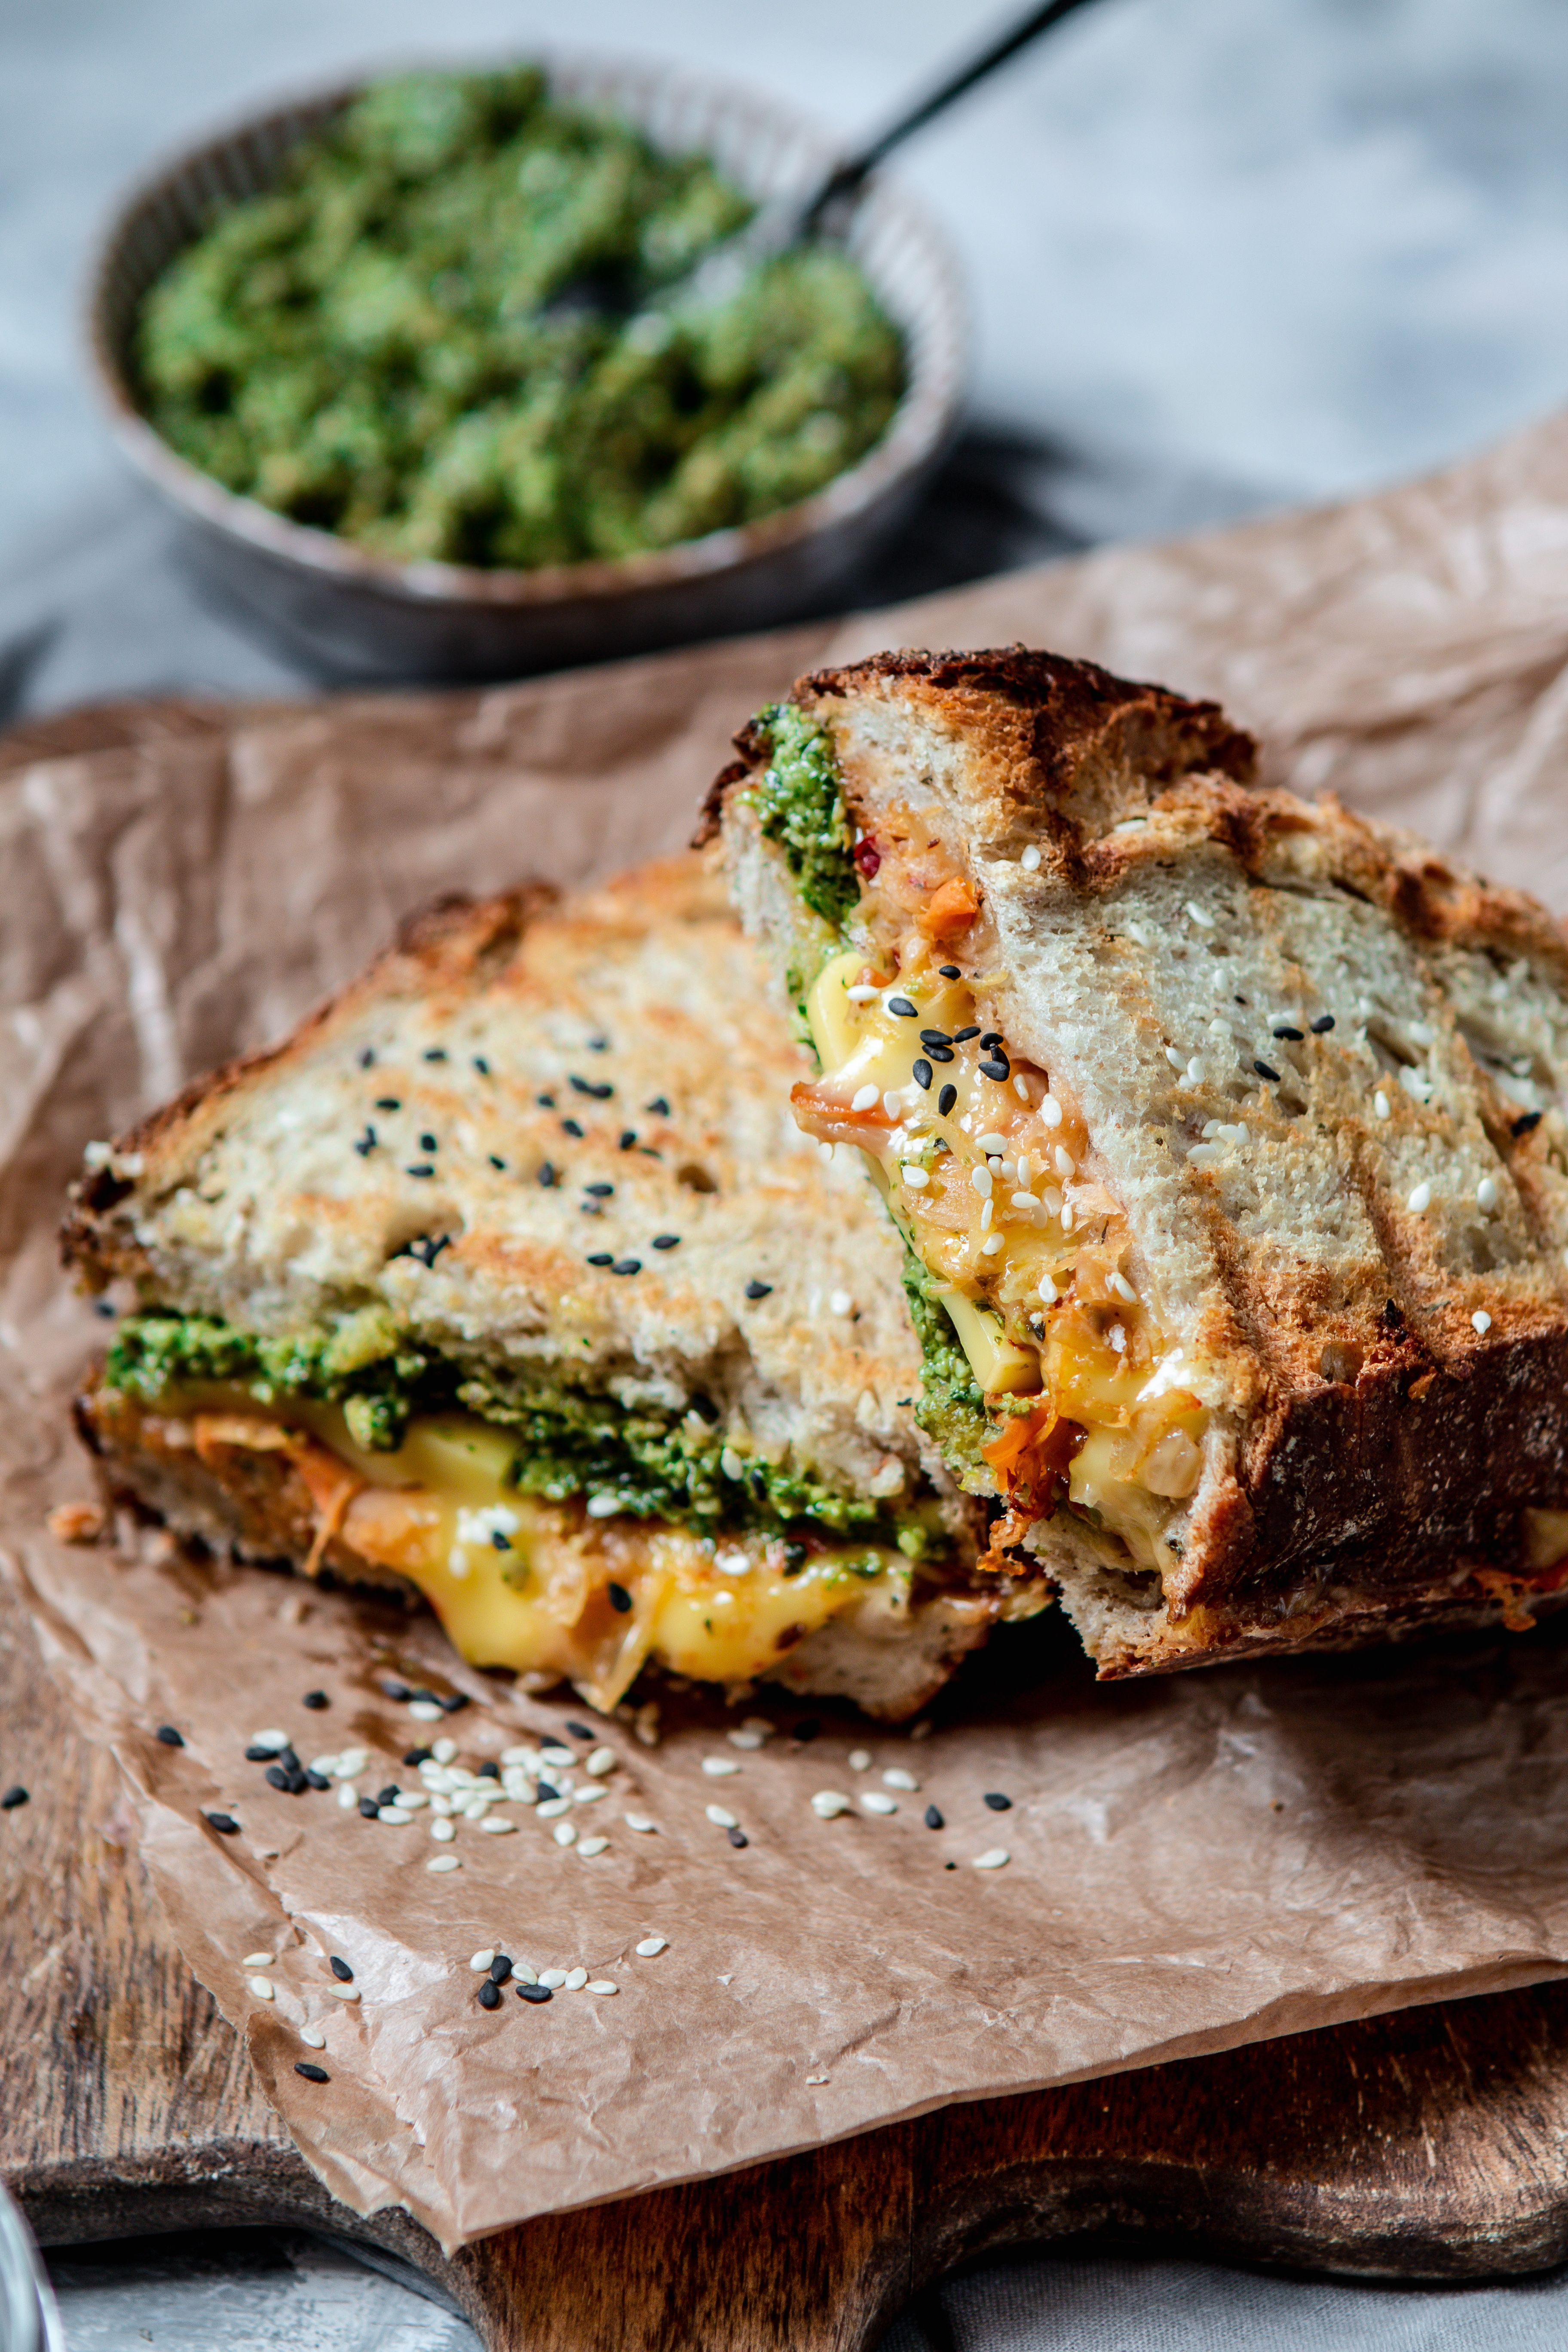 The Ultimate Vegan Grilled Cheese Vegan Grilling Food Pesto Grilled Cheeses